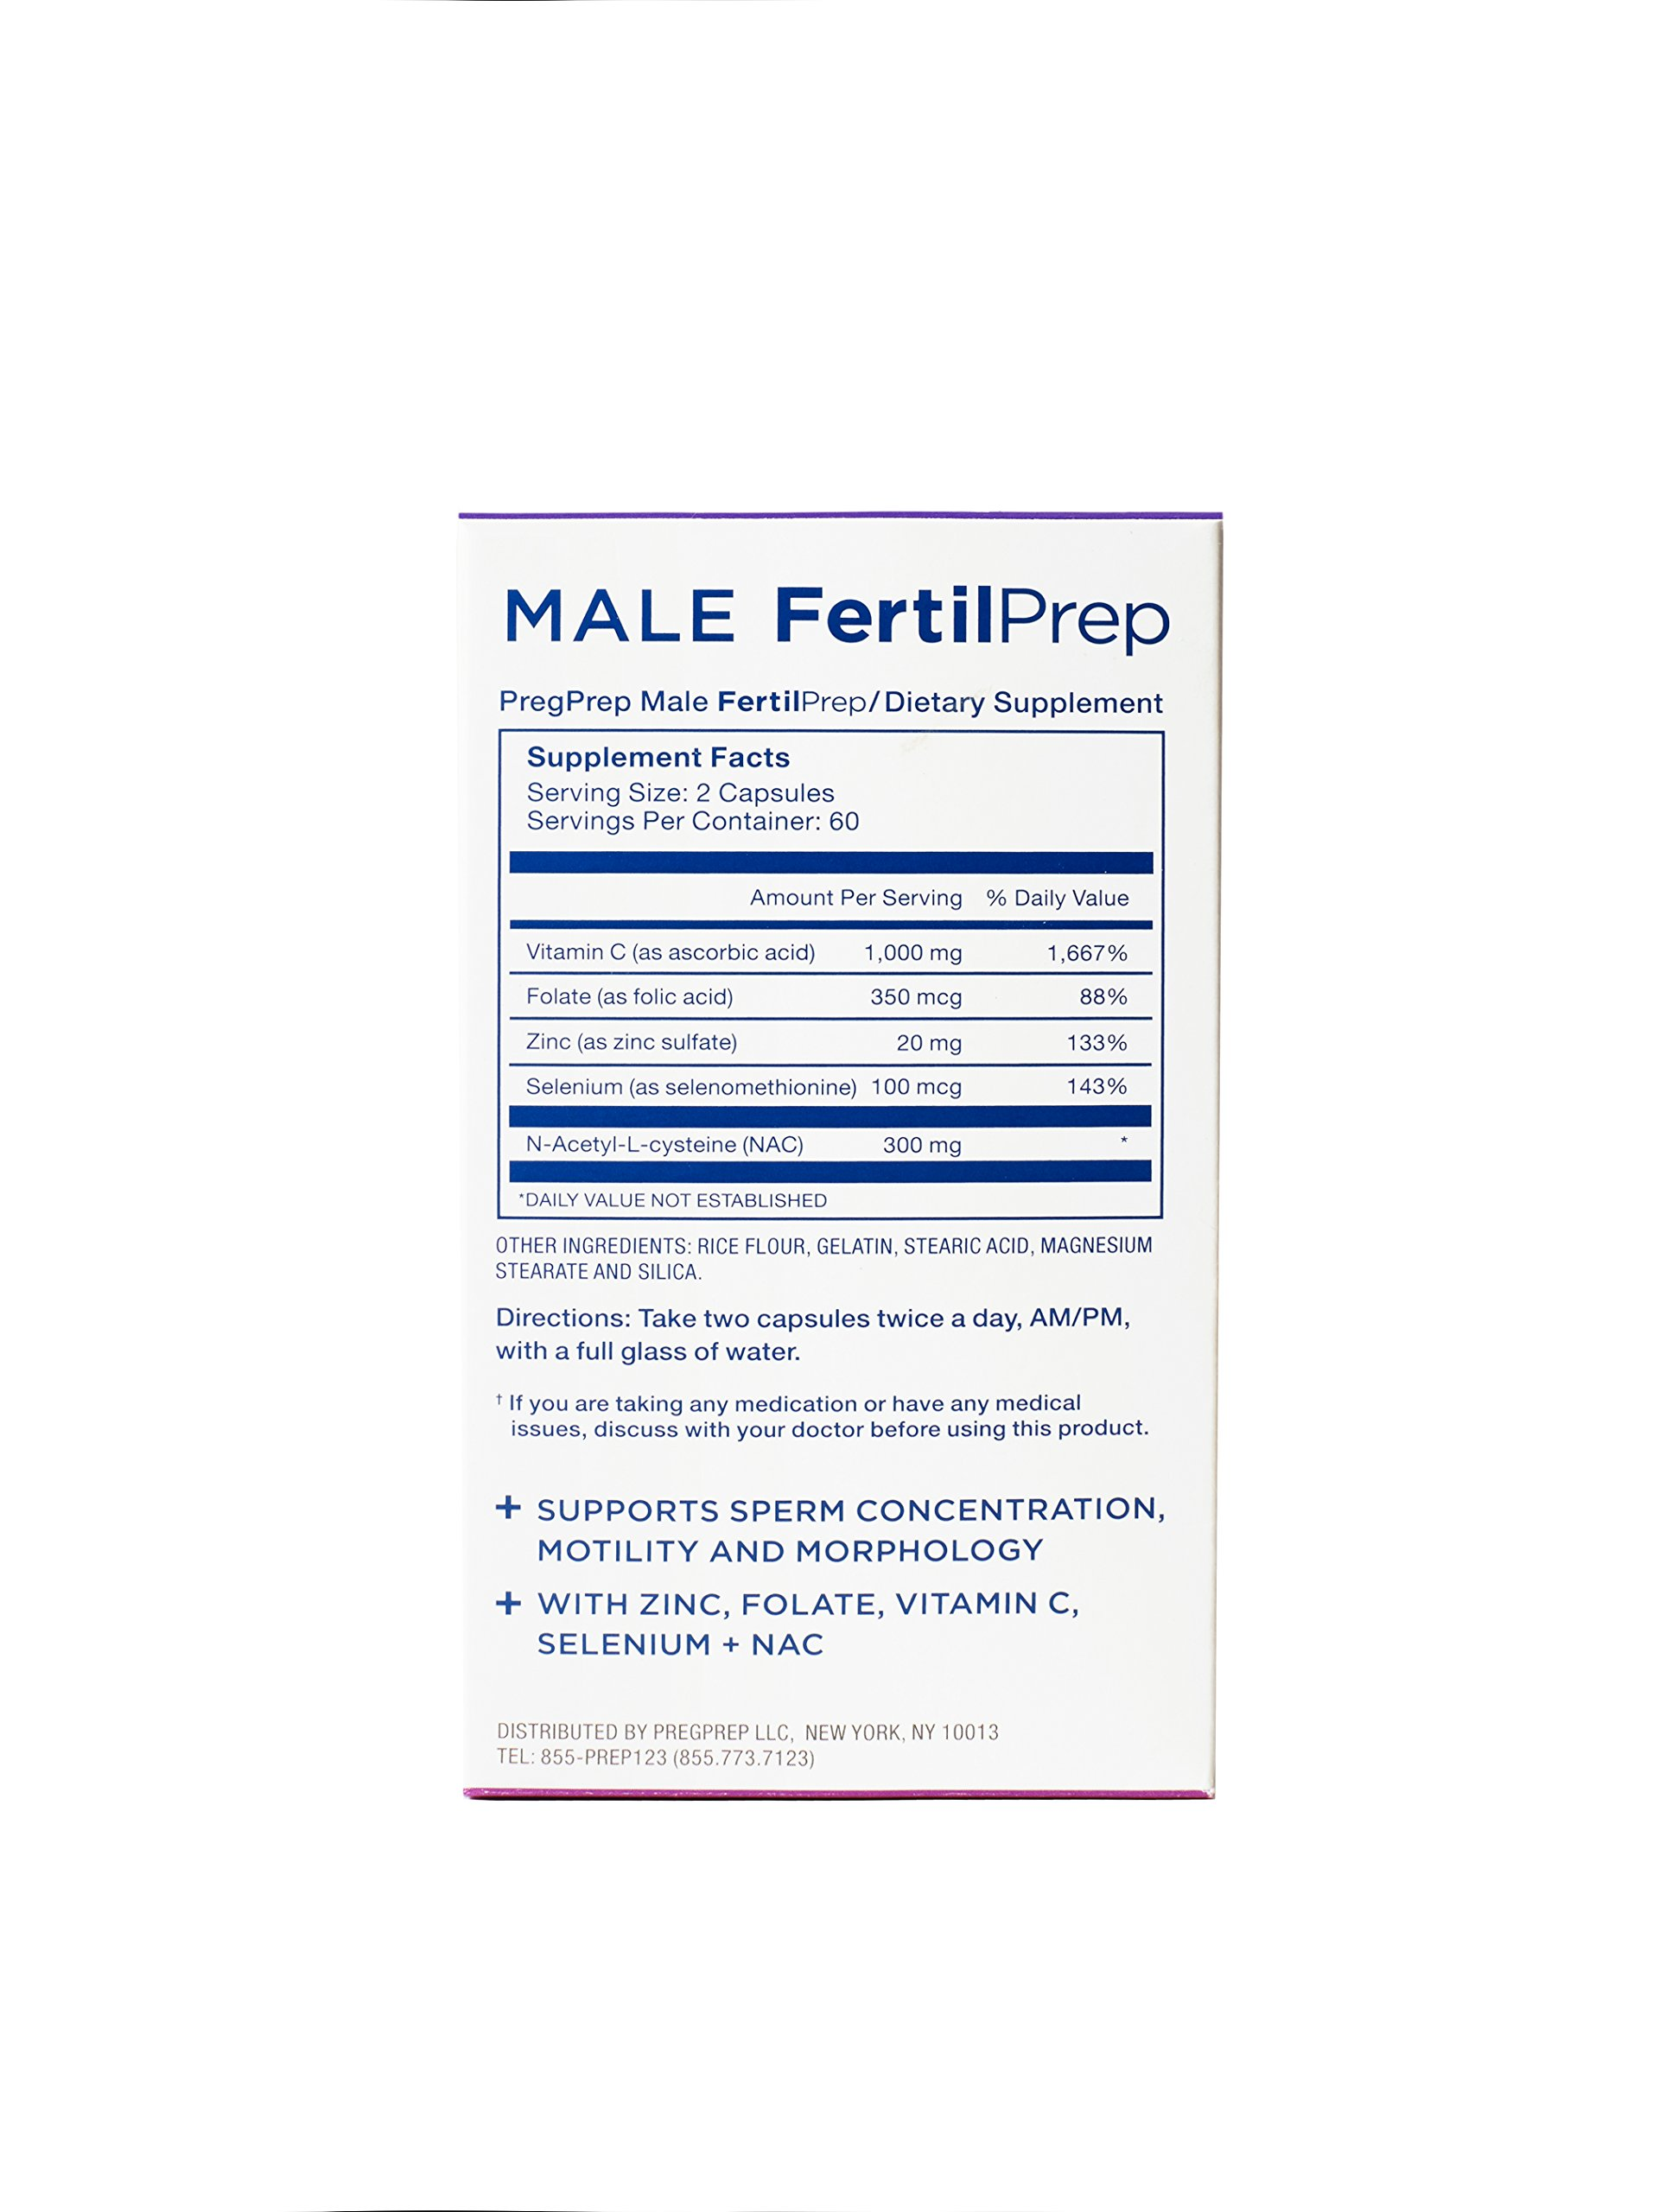 PregPrep Complete Conception + Male FertilPrep: Fertility Supplements for Women and Men by PregPrep (Image #7)